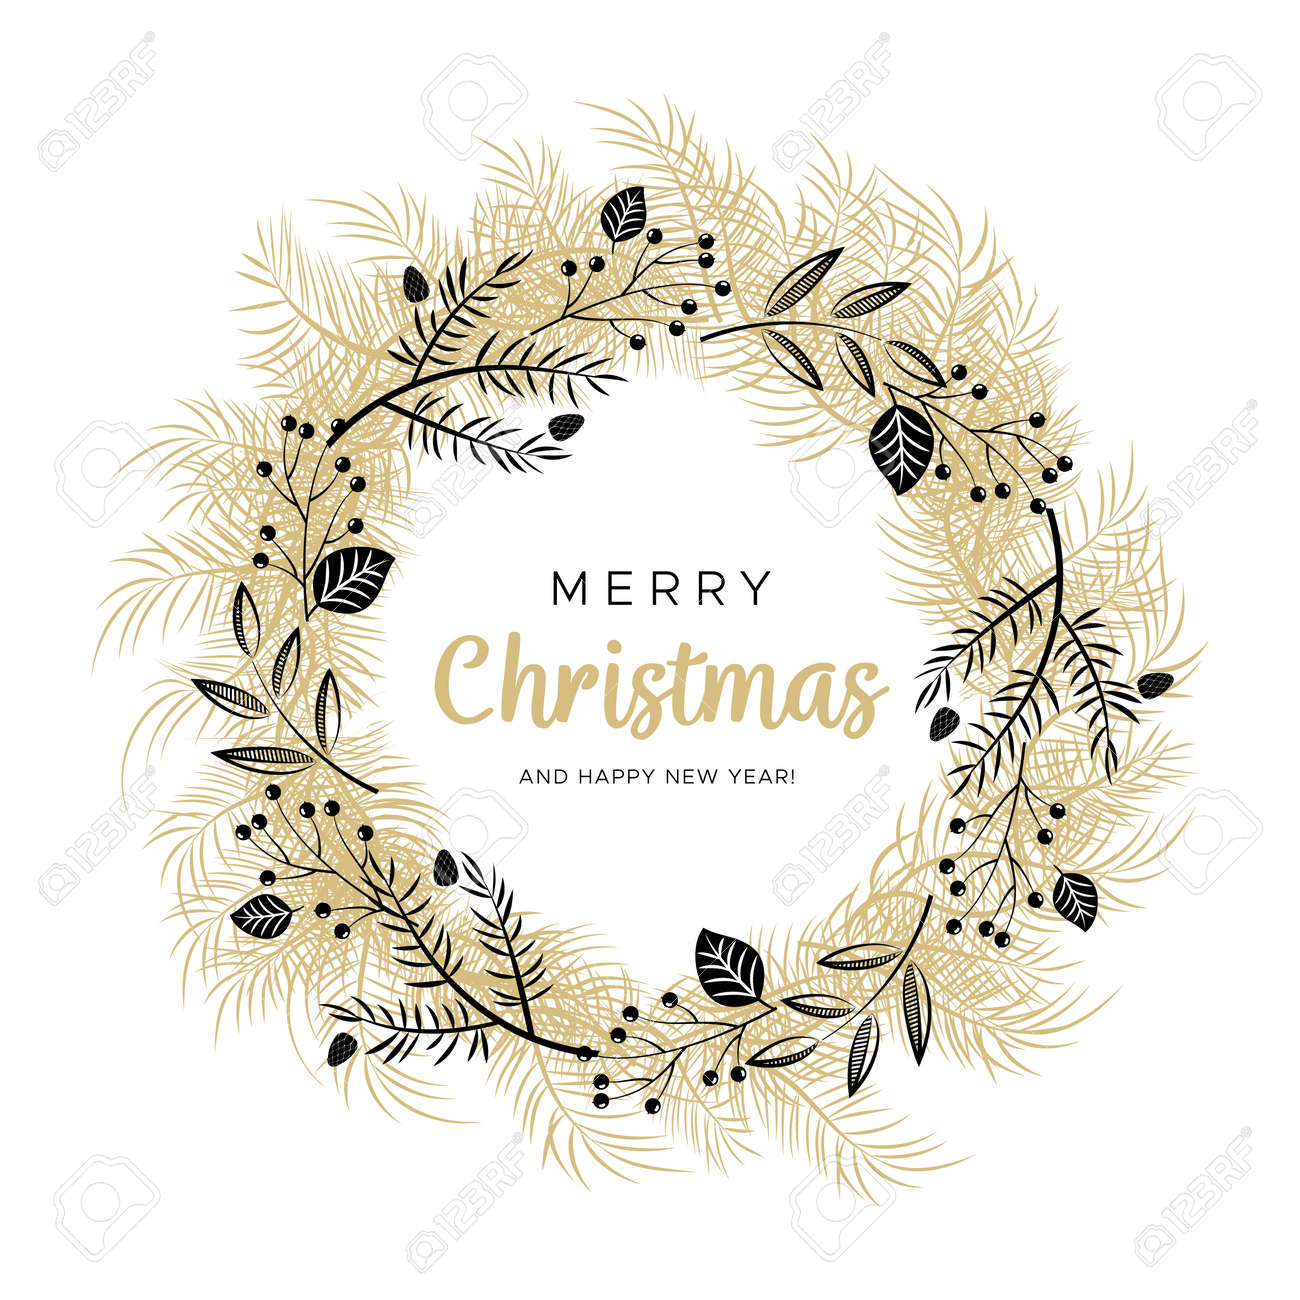 Gold Christmas Wreath.Christmas Wreath With Black And Gold Branches And Pine Cones